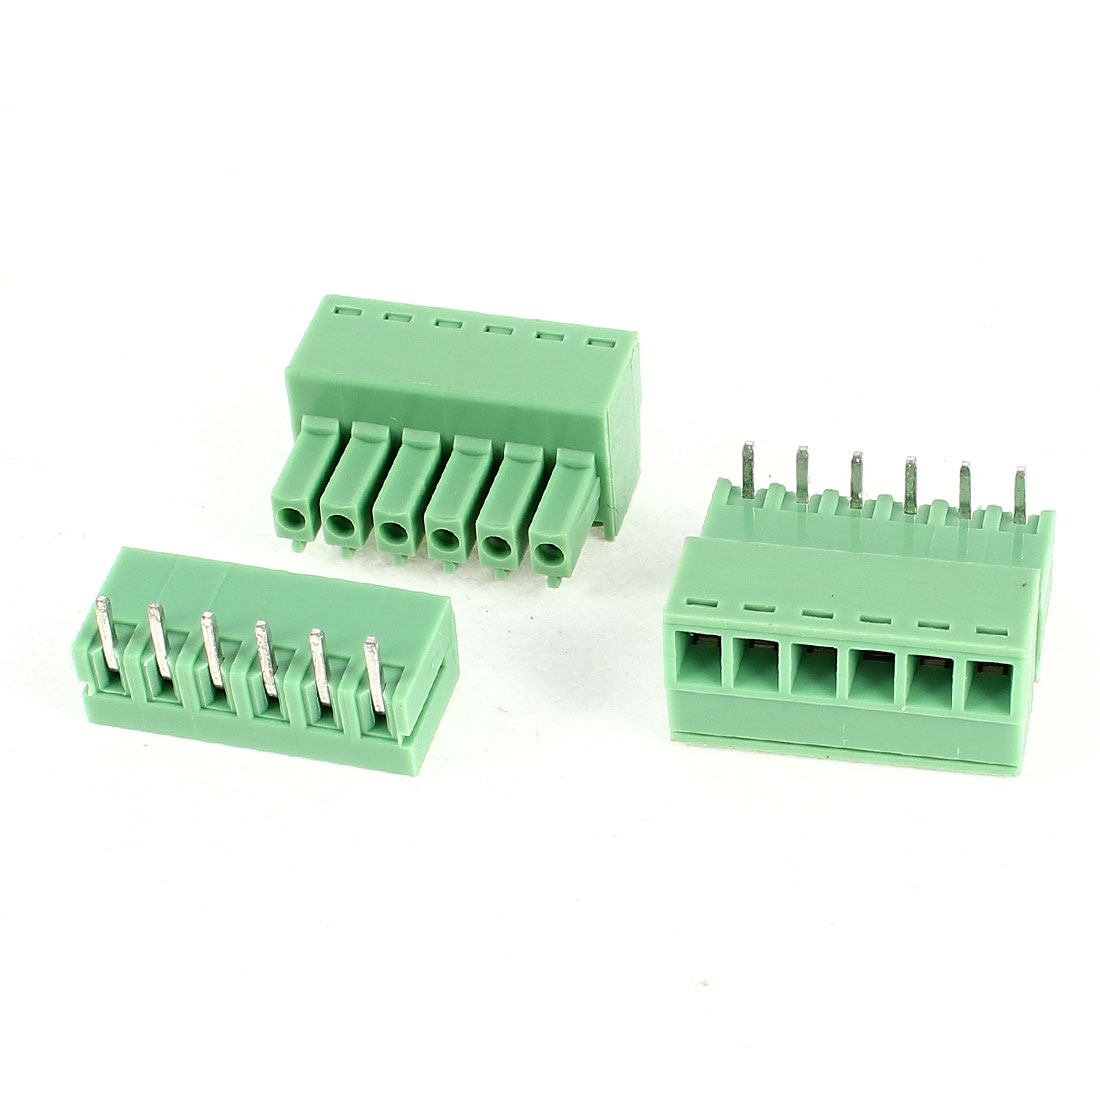 2Pcs 2EDG3.5-6P 3.5mm Pitch 6 Bending Pins Female and Male Wire Pluggable Terminal Barrier Strip Block Connector 300V 8A